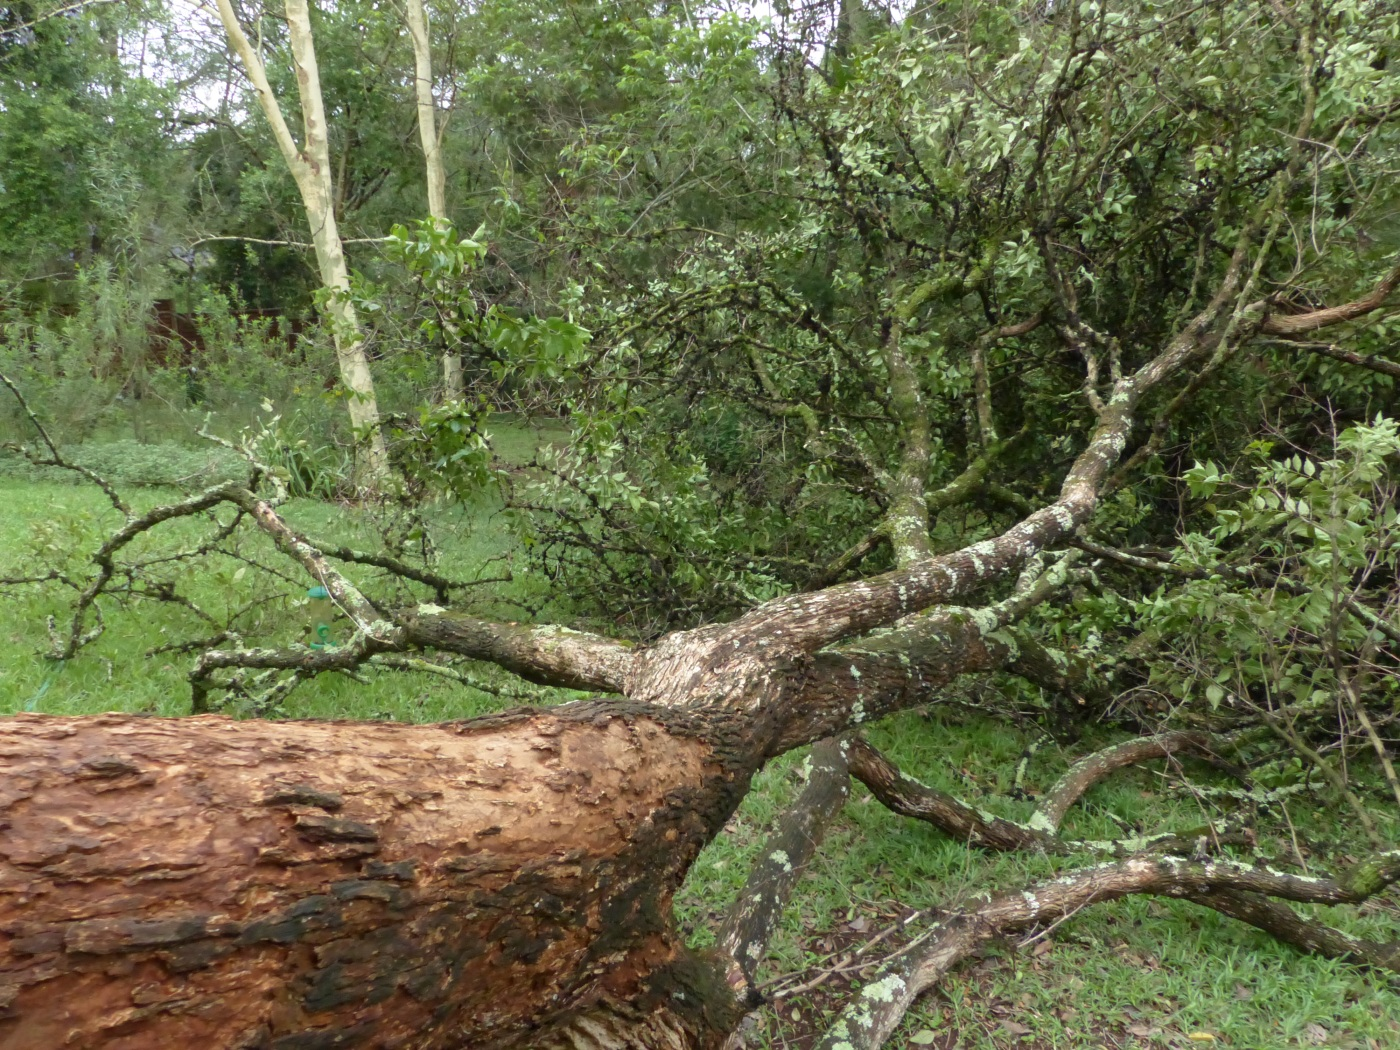 Halleria lucida fallen over in suburban garden, South Africa